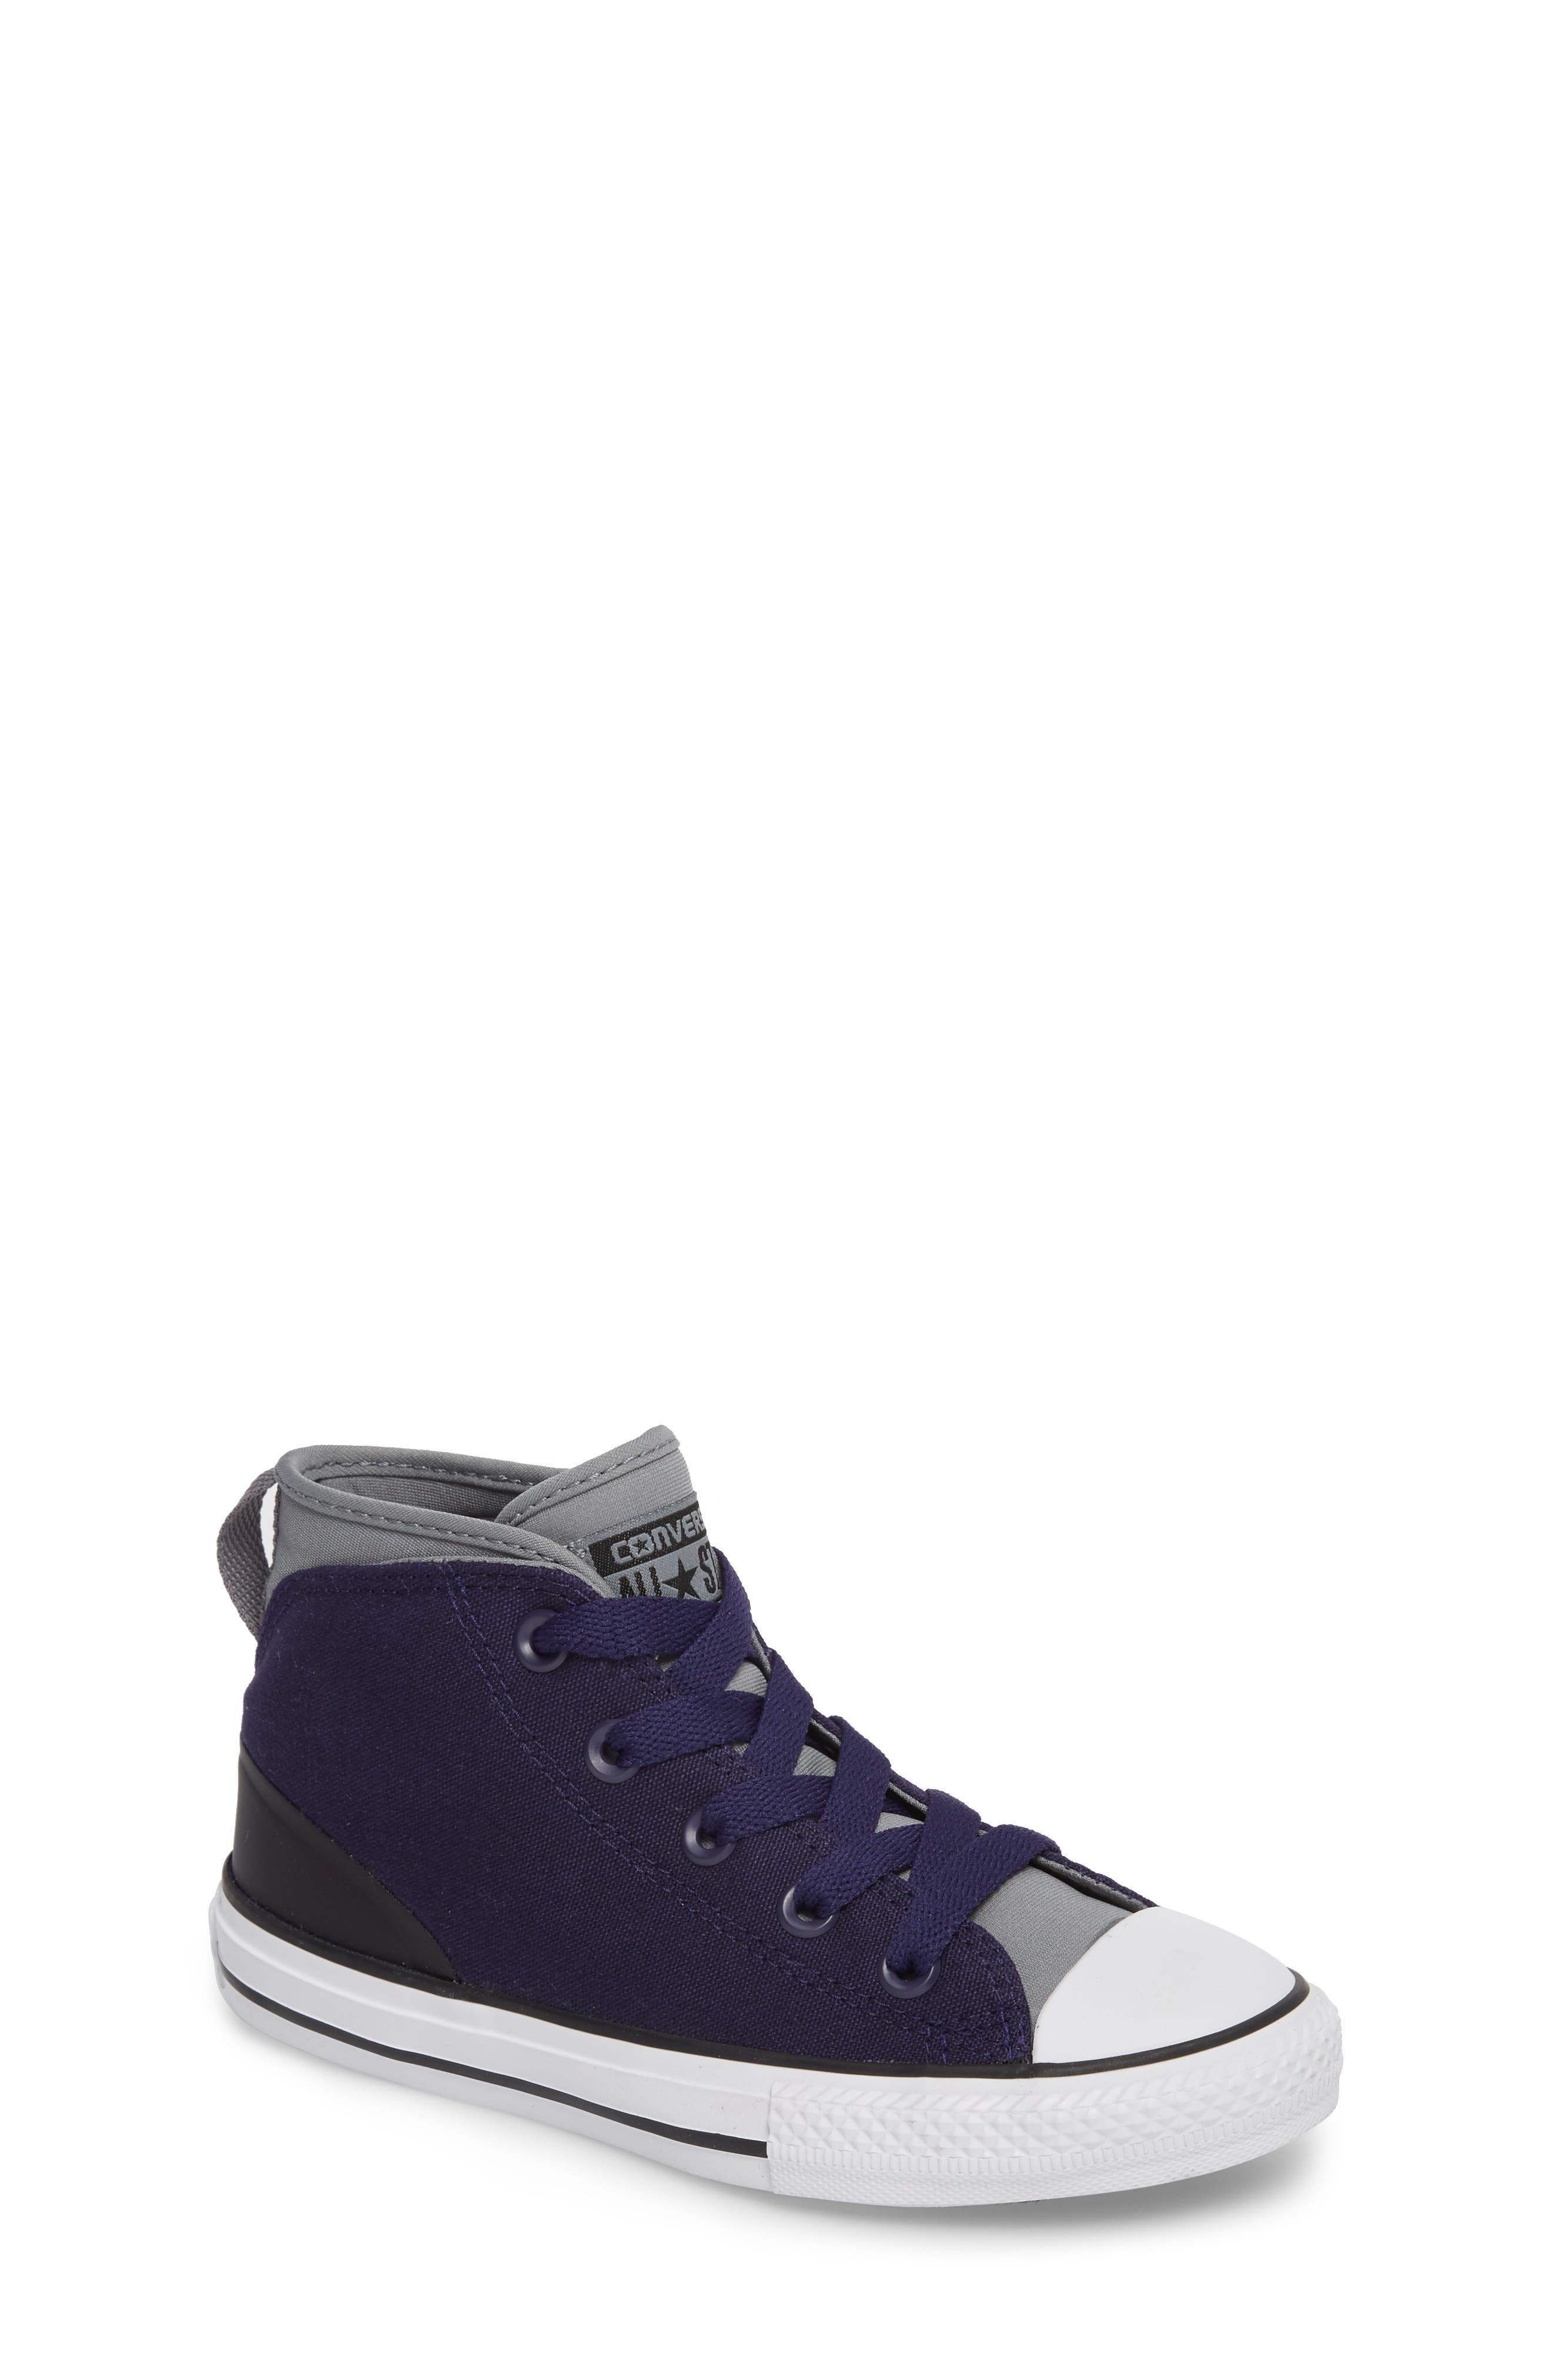 Chuck Taylor<sup>®</sup> All Star<sup>®</sup> Syde Street High Top Sneaker,                             Main thumbnail 1, color,                             401